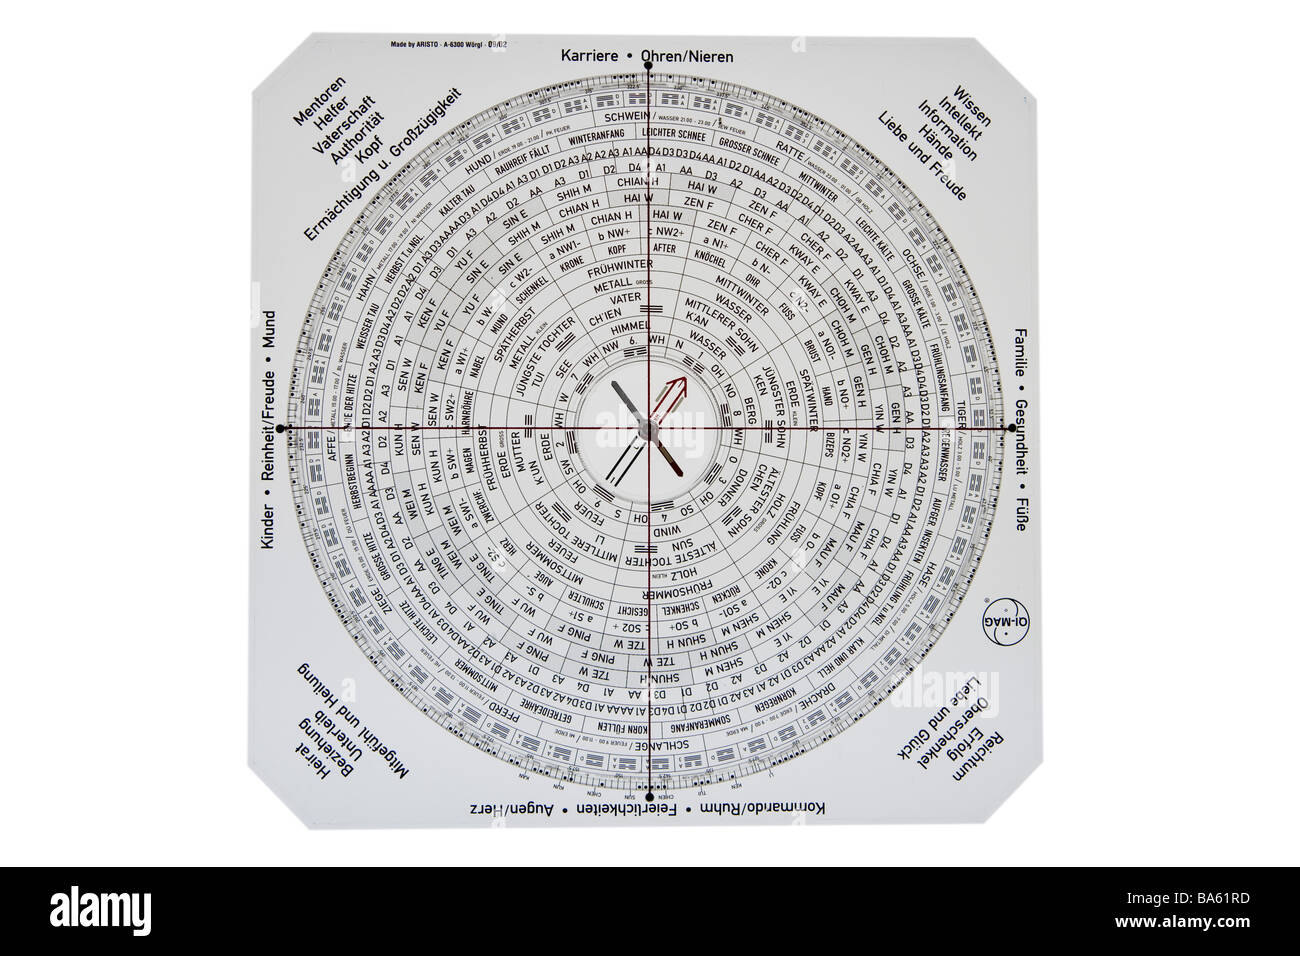 feng shui compass lo pan series plates feng shui compass lo feng shui compass lo pan series plates feng shui compass lo pan luo pan gauge application advice residential culture